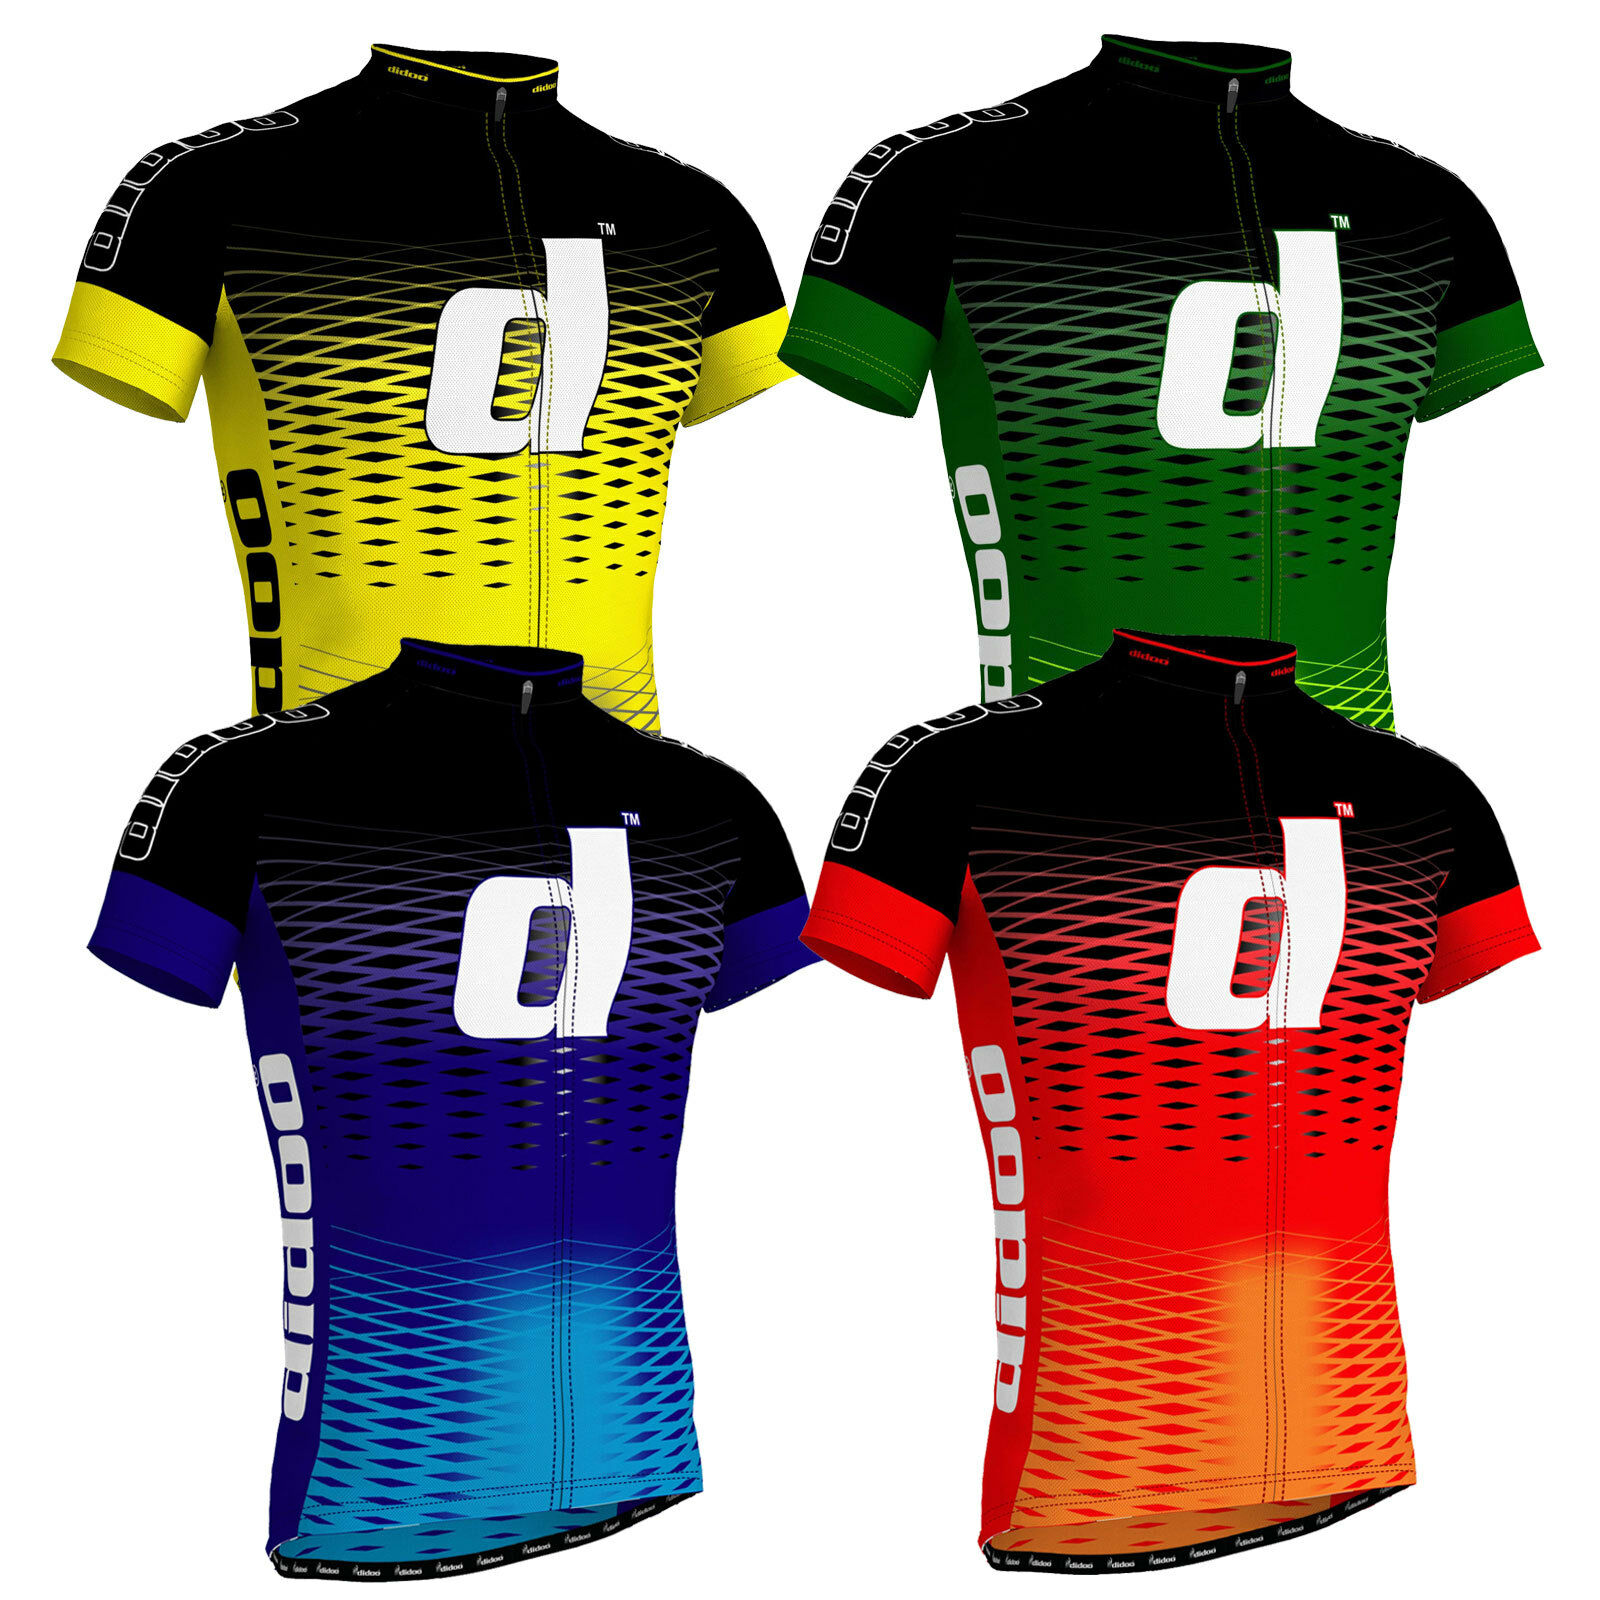 Details about Didoo New Men s Half Sleeves Cycling Jerseys Outdoor Cycle  Sports Summer Tshirts 2fa4c182b